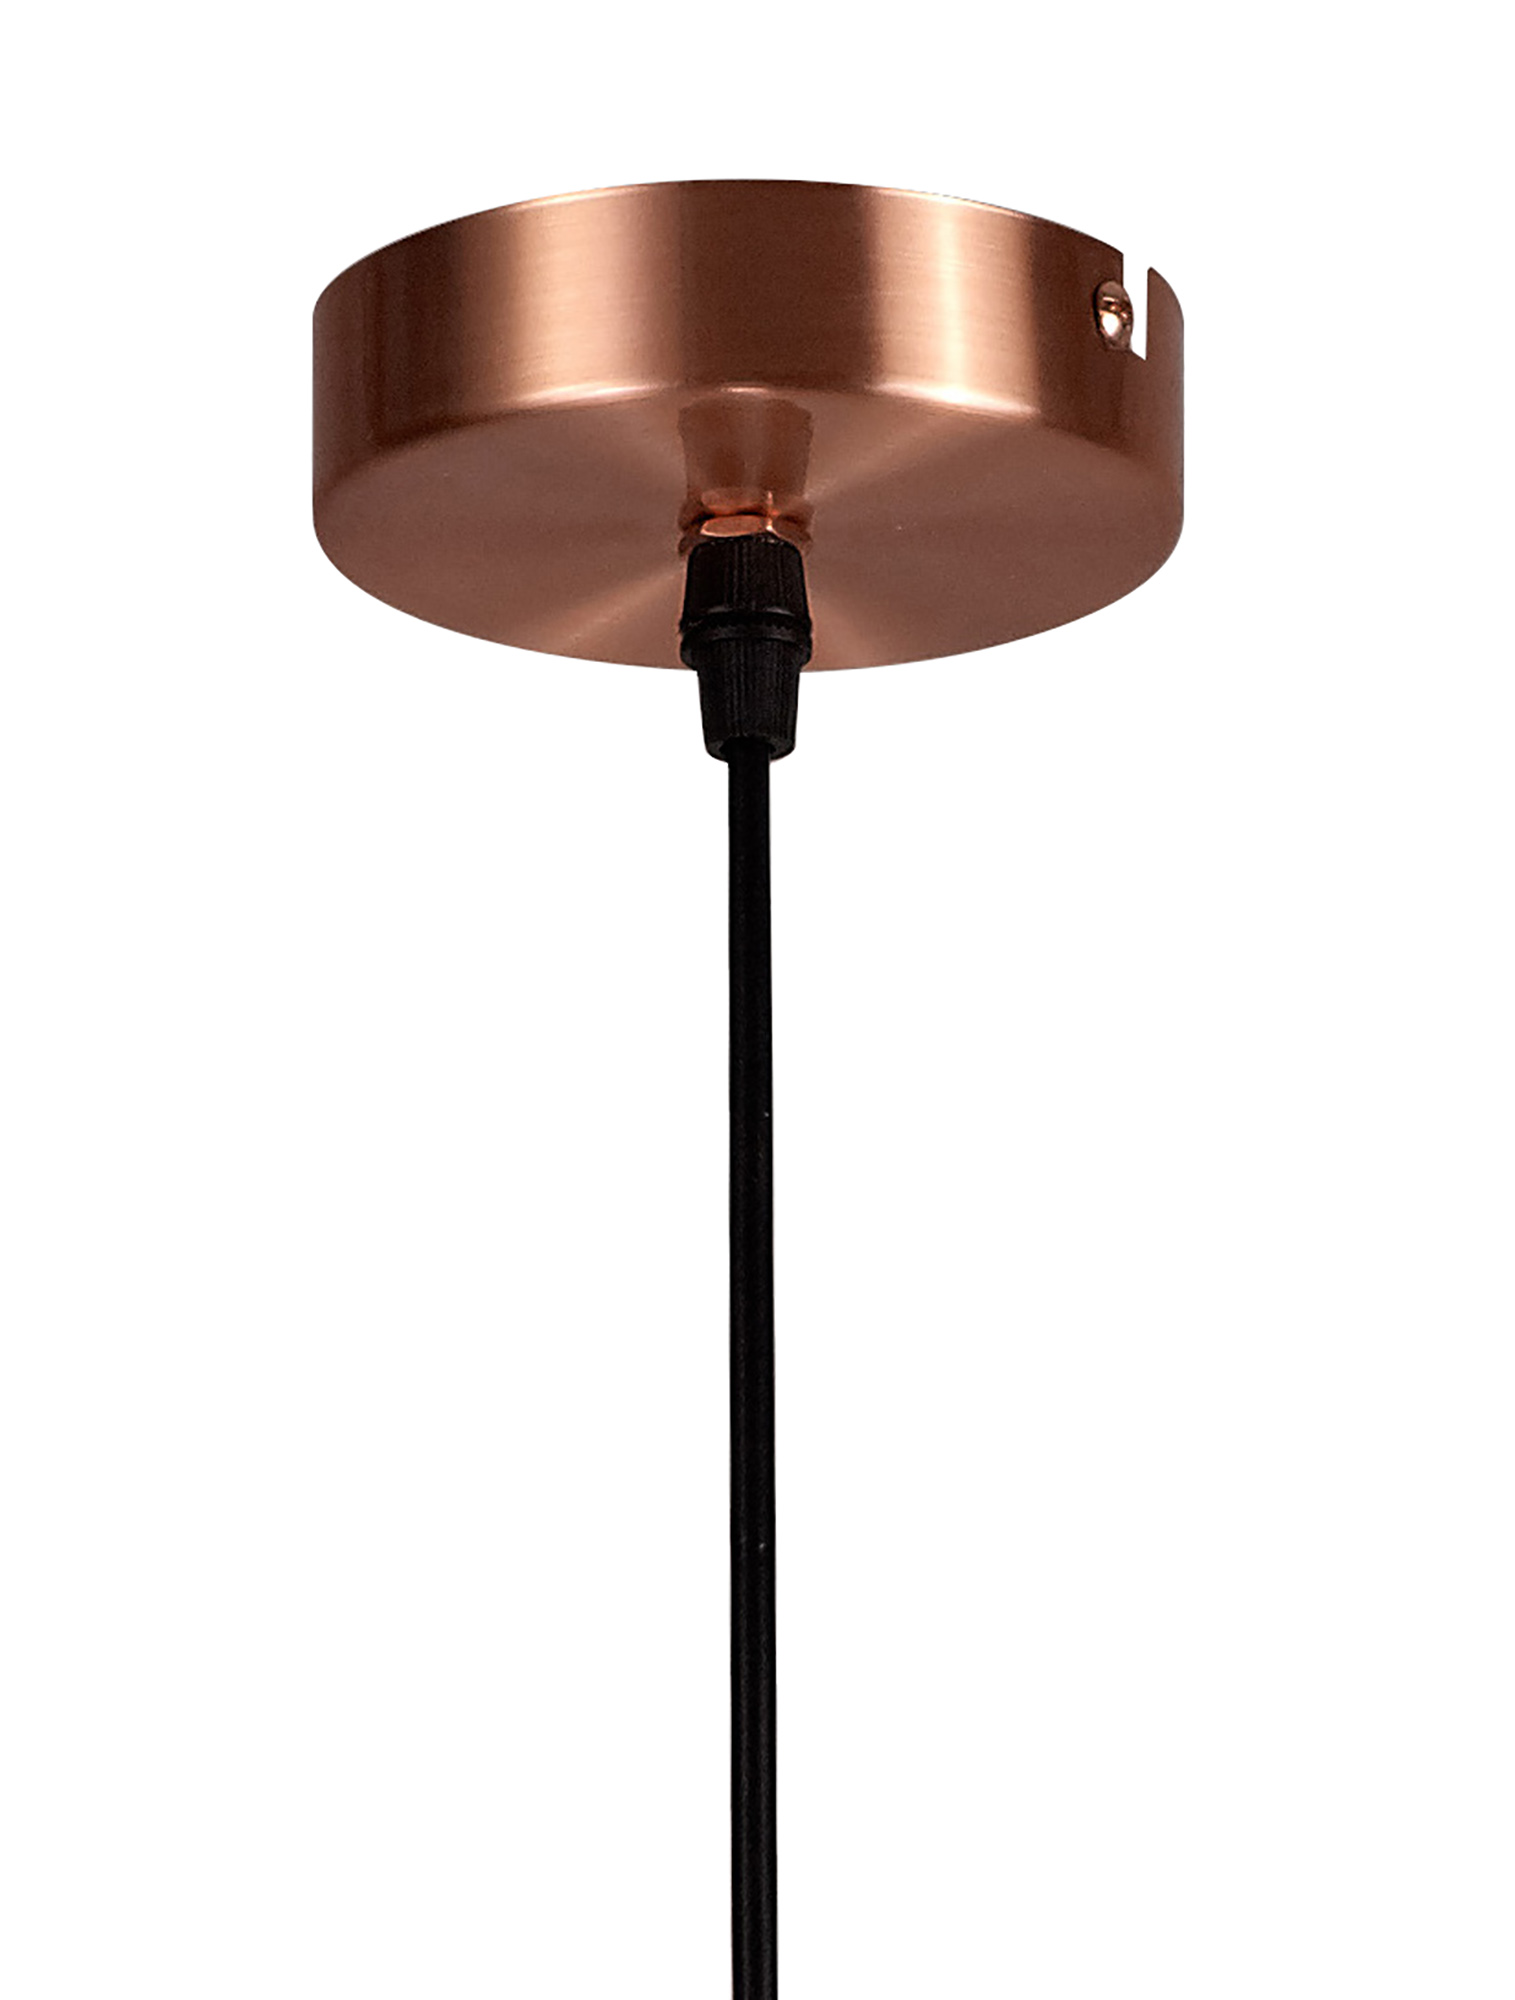 Medium Pendant, 1 x E27, Antique Copper/Black